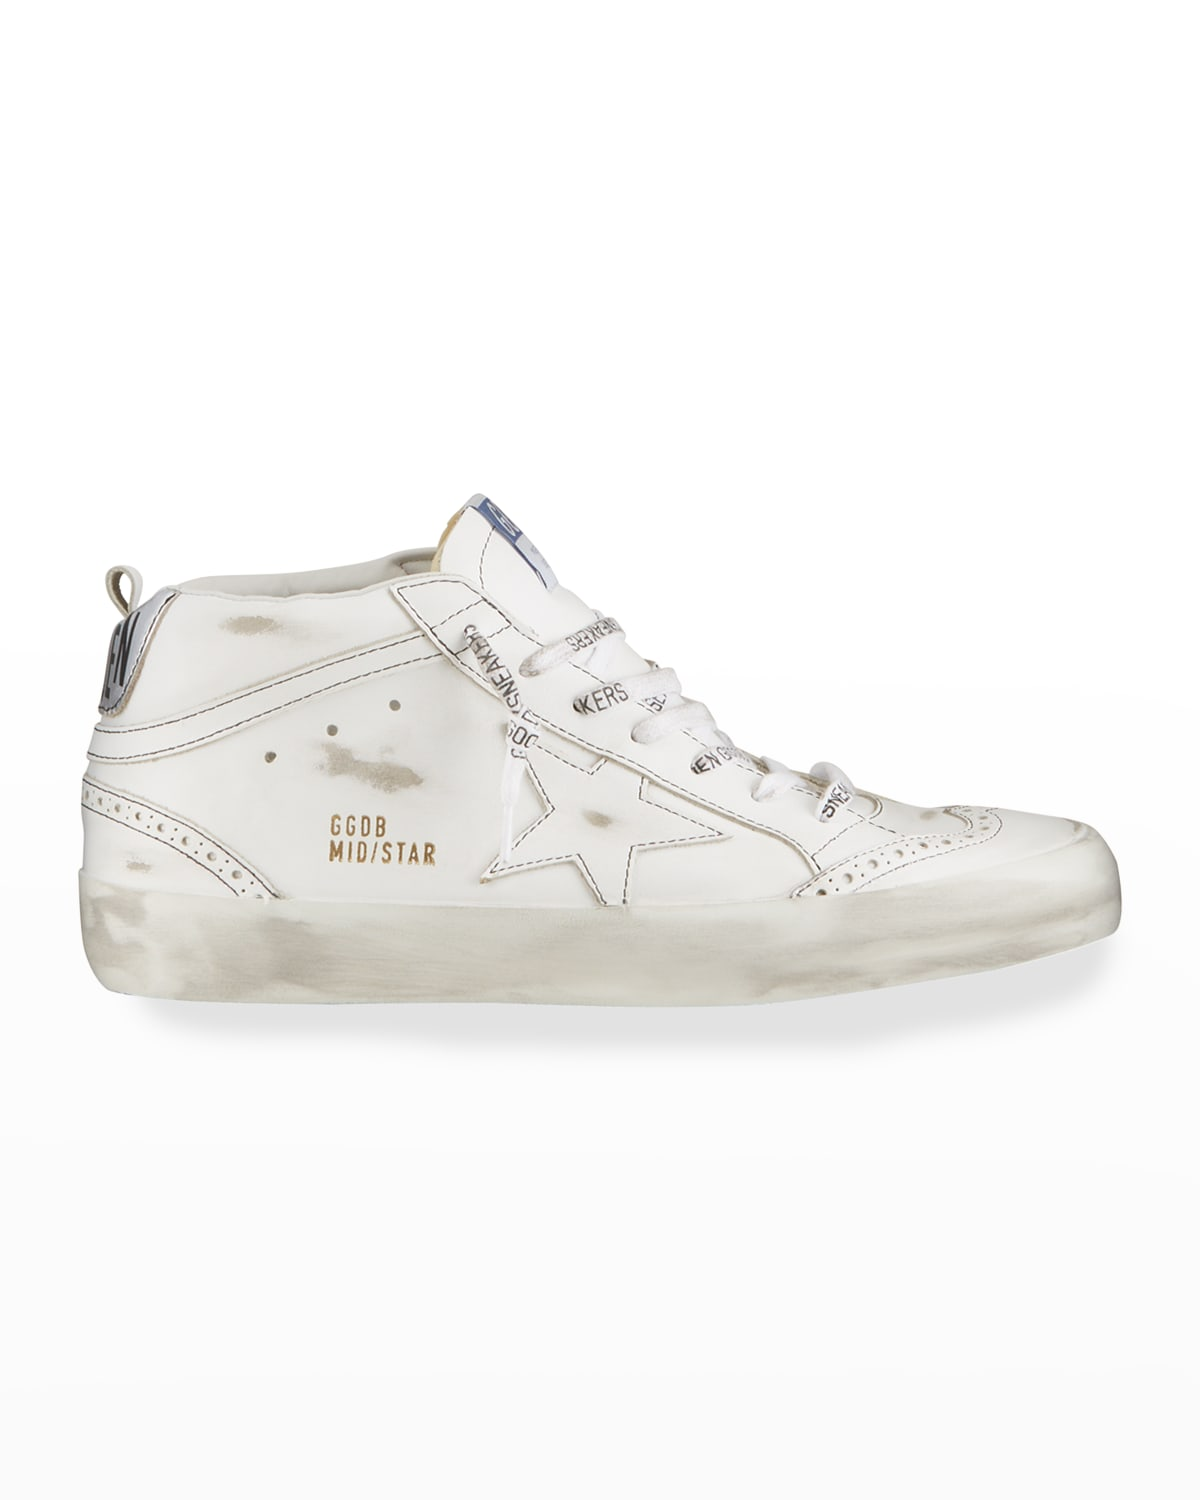 Men's Mid Star Distressed Leather Sneakers